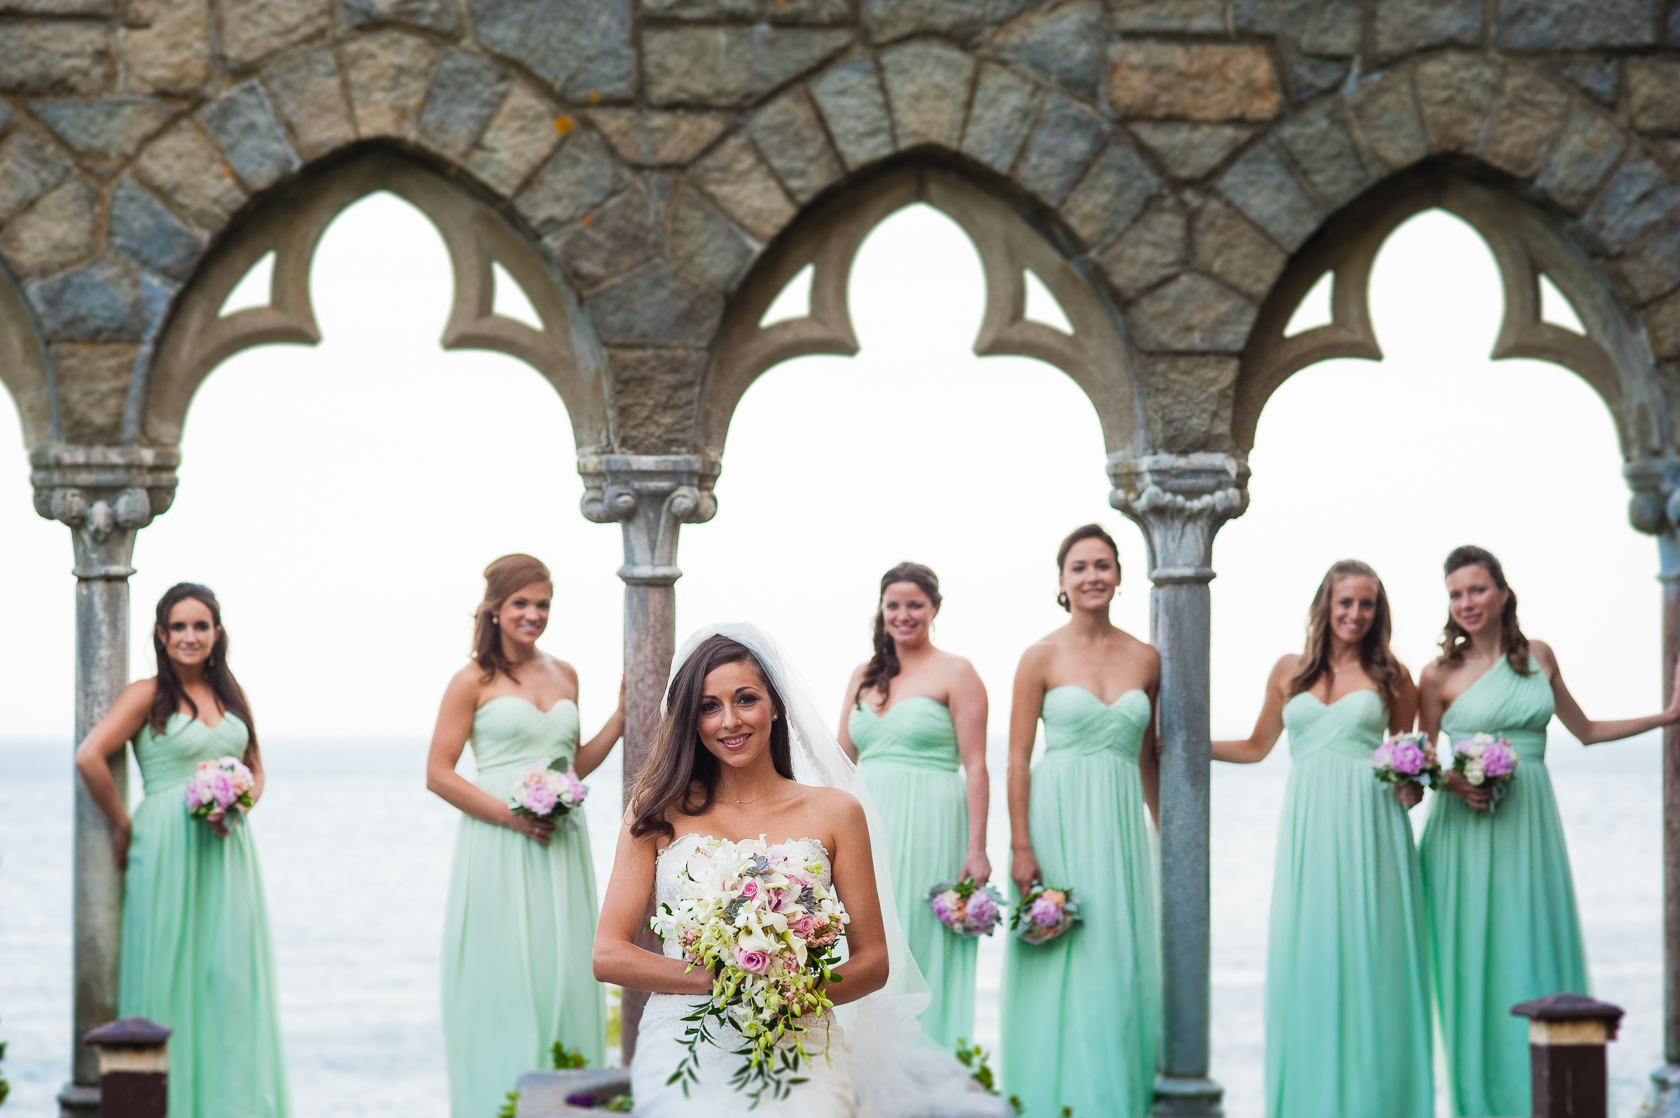 beautiful bride poses in front of castle arches